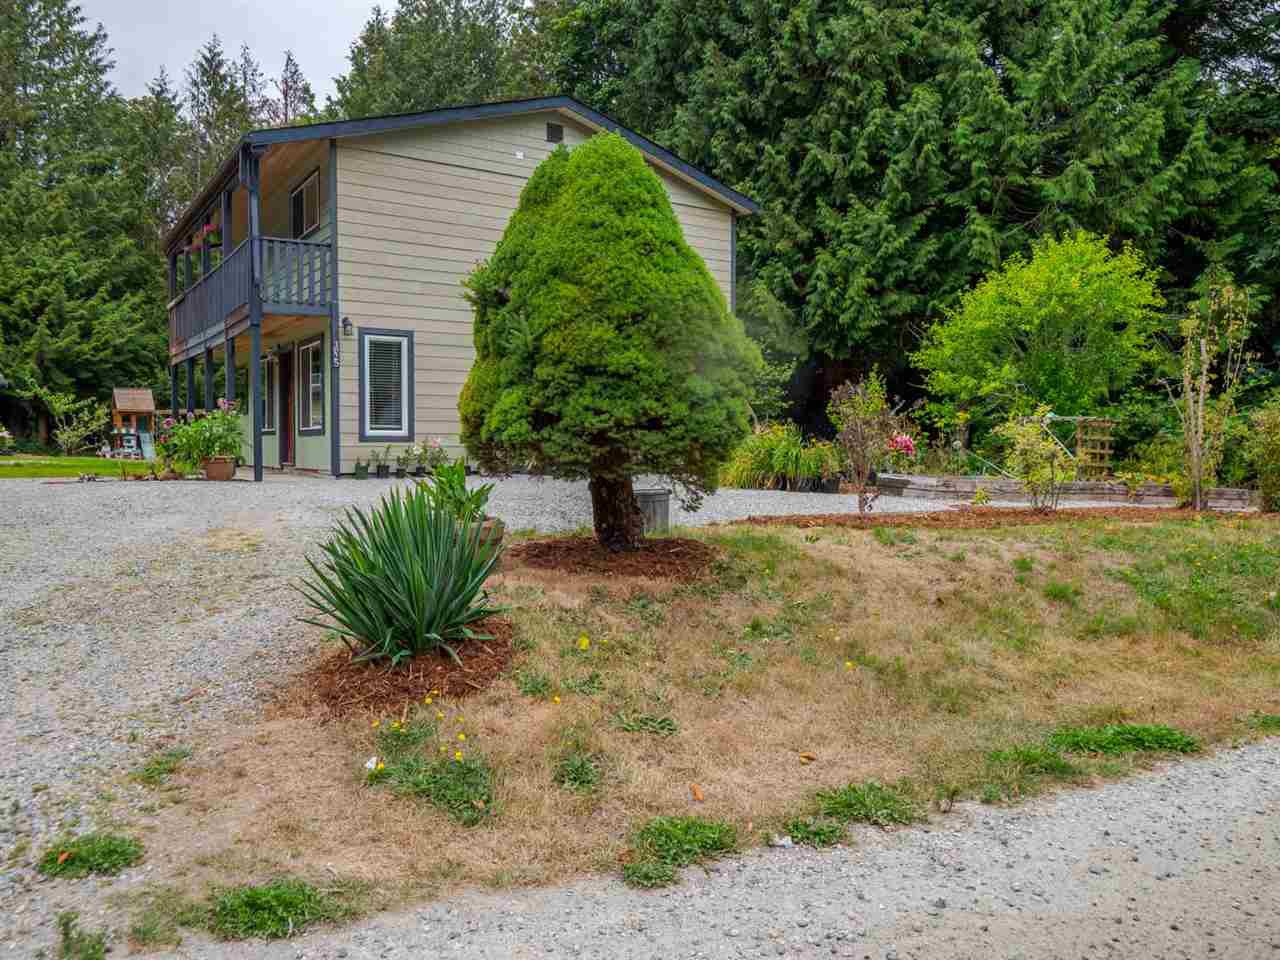 Photo 20: Photos: 1625 BLOWER Road in Sechelt: Sechelt District House for sale (Sunshine Coast)  : MLS®# R2394268